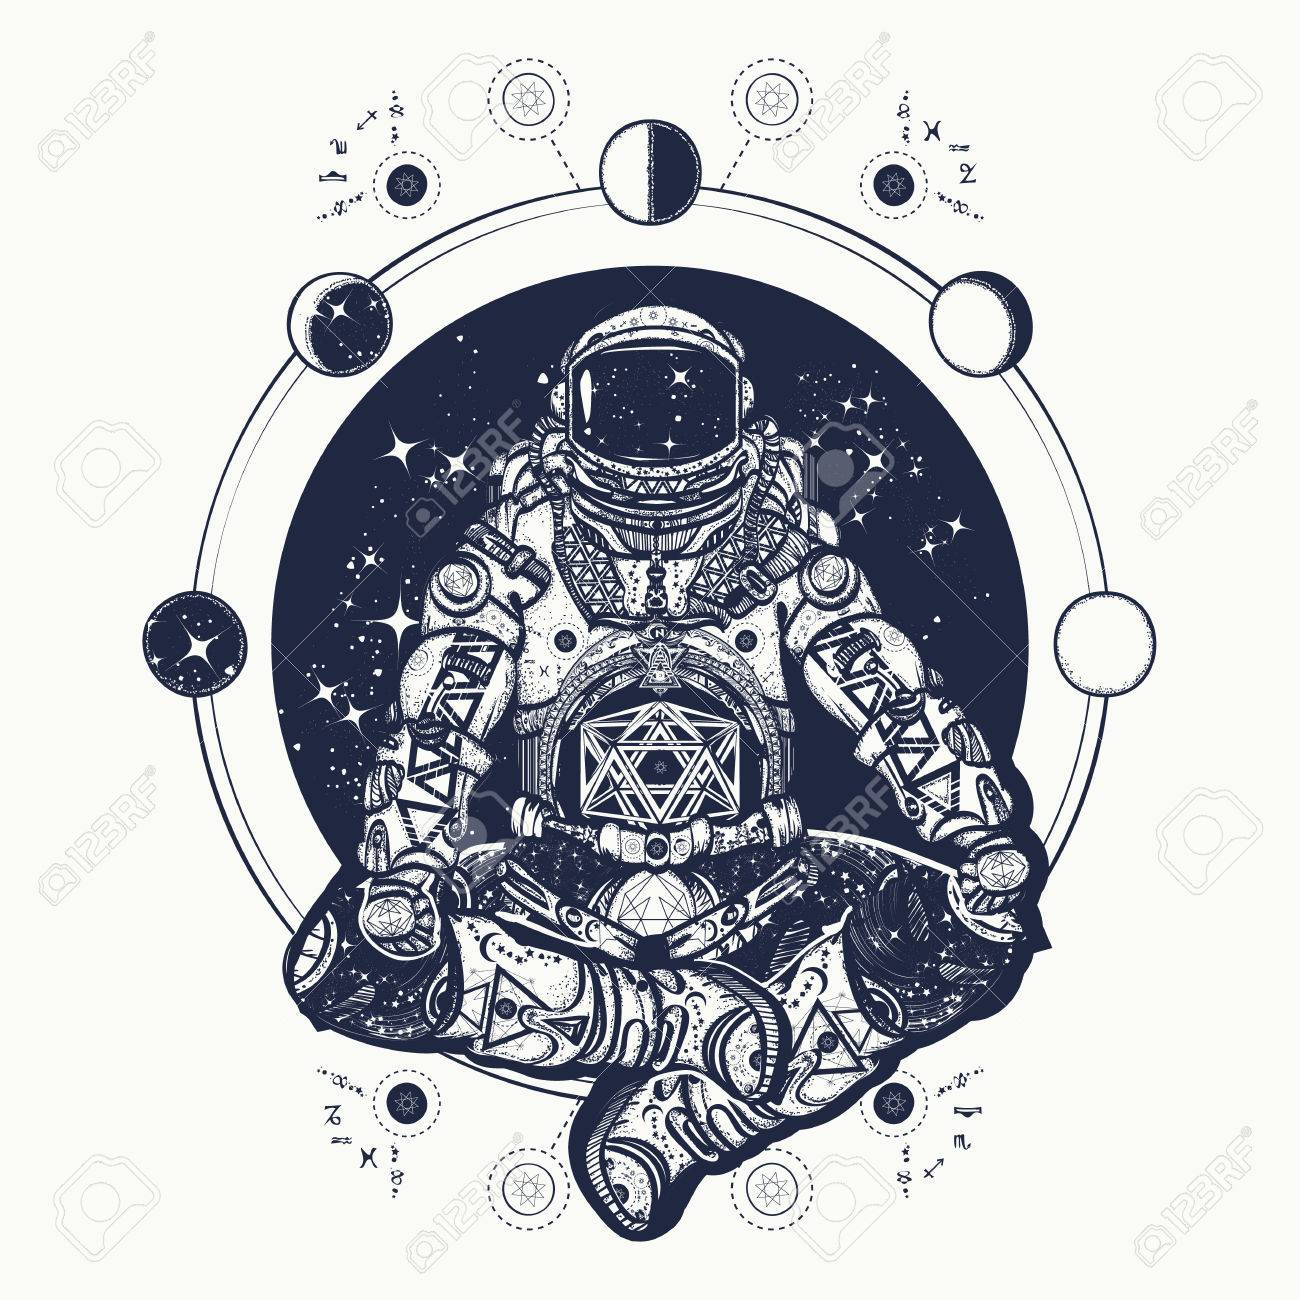 Astronaut In The Lotus Position Tattoo Art Symbol Of Meditation